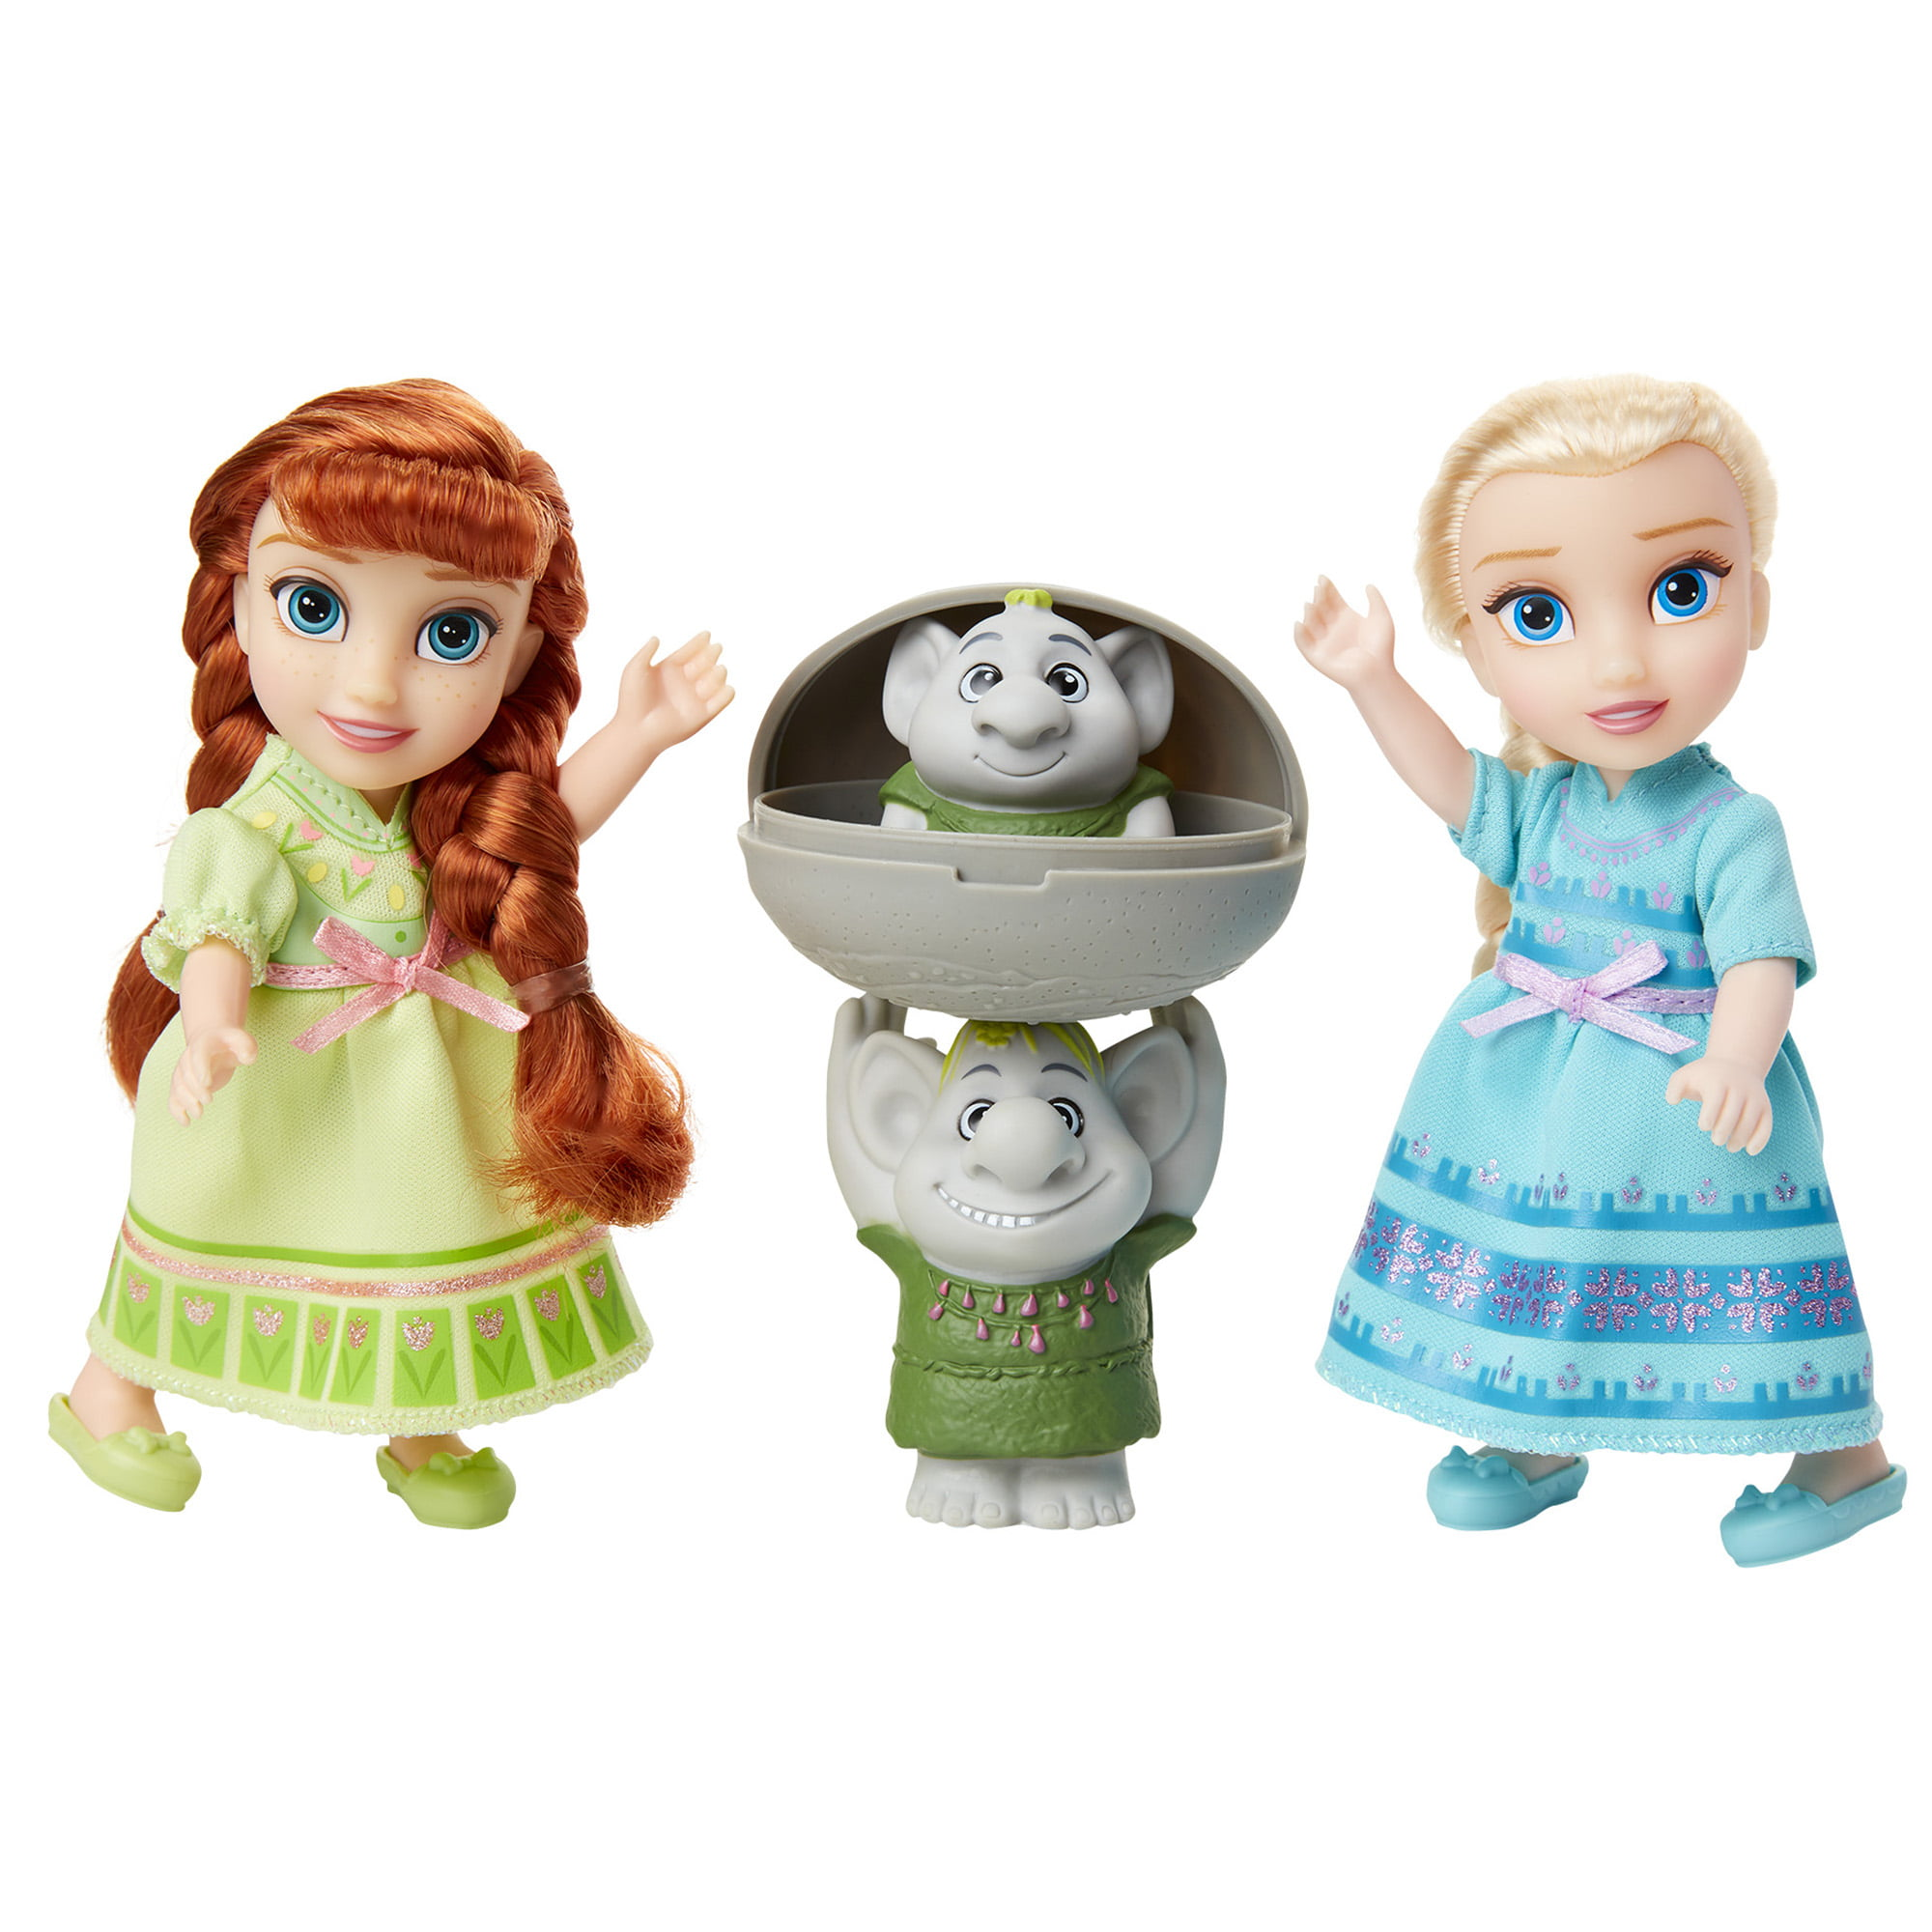 Disney Frozen Petite Princess Anna and Elsa includes Surprise Trolls